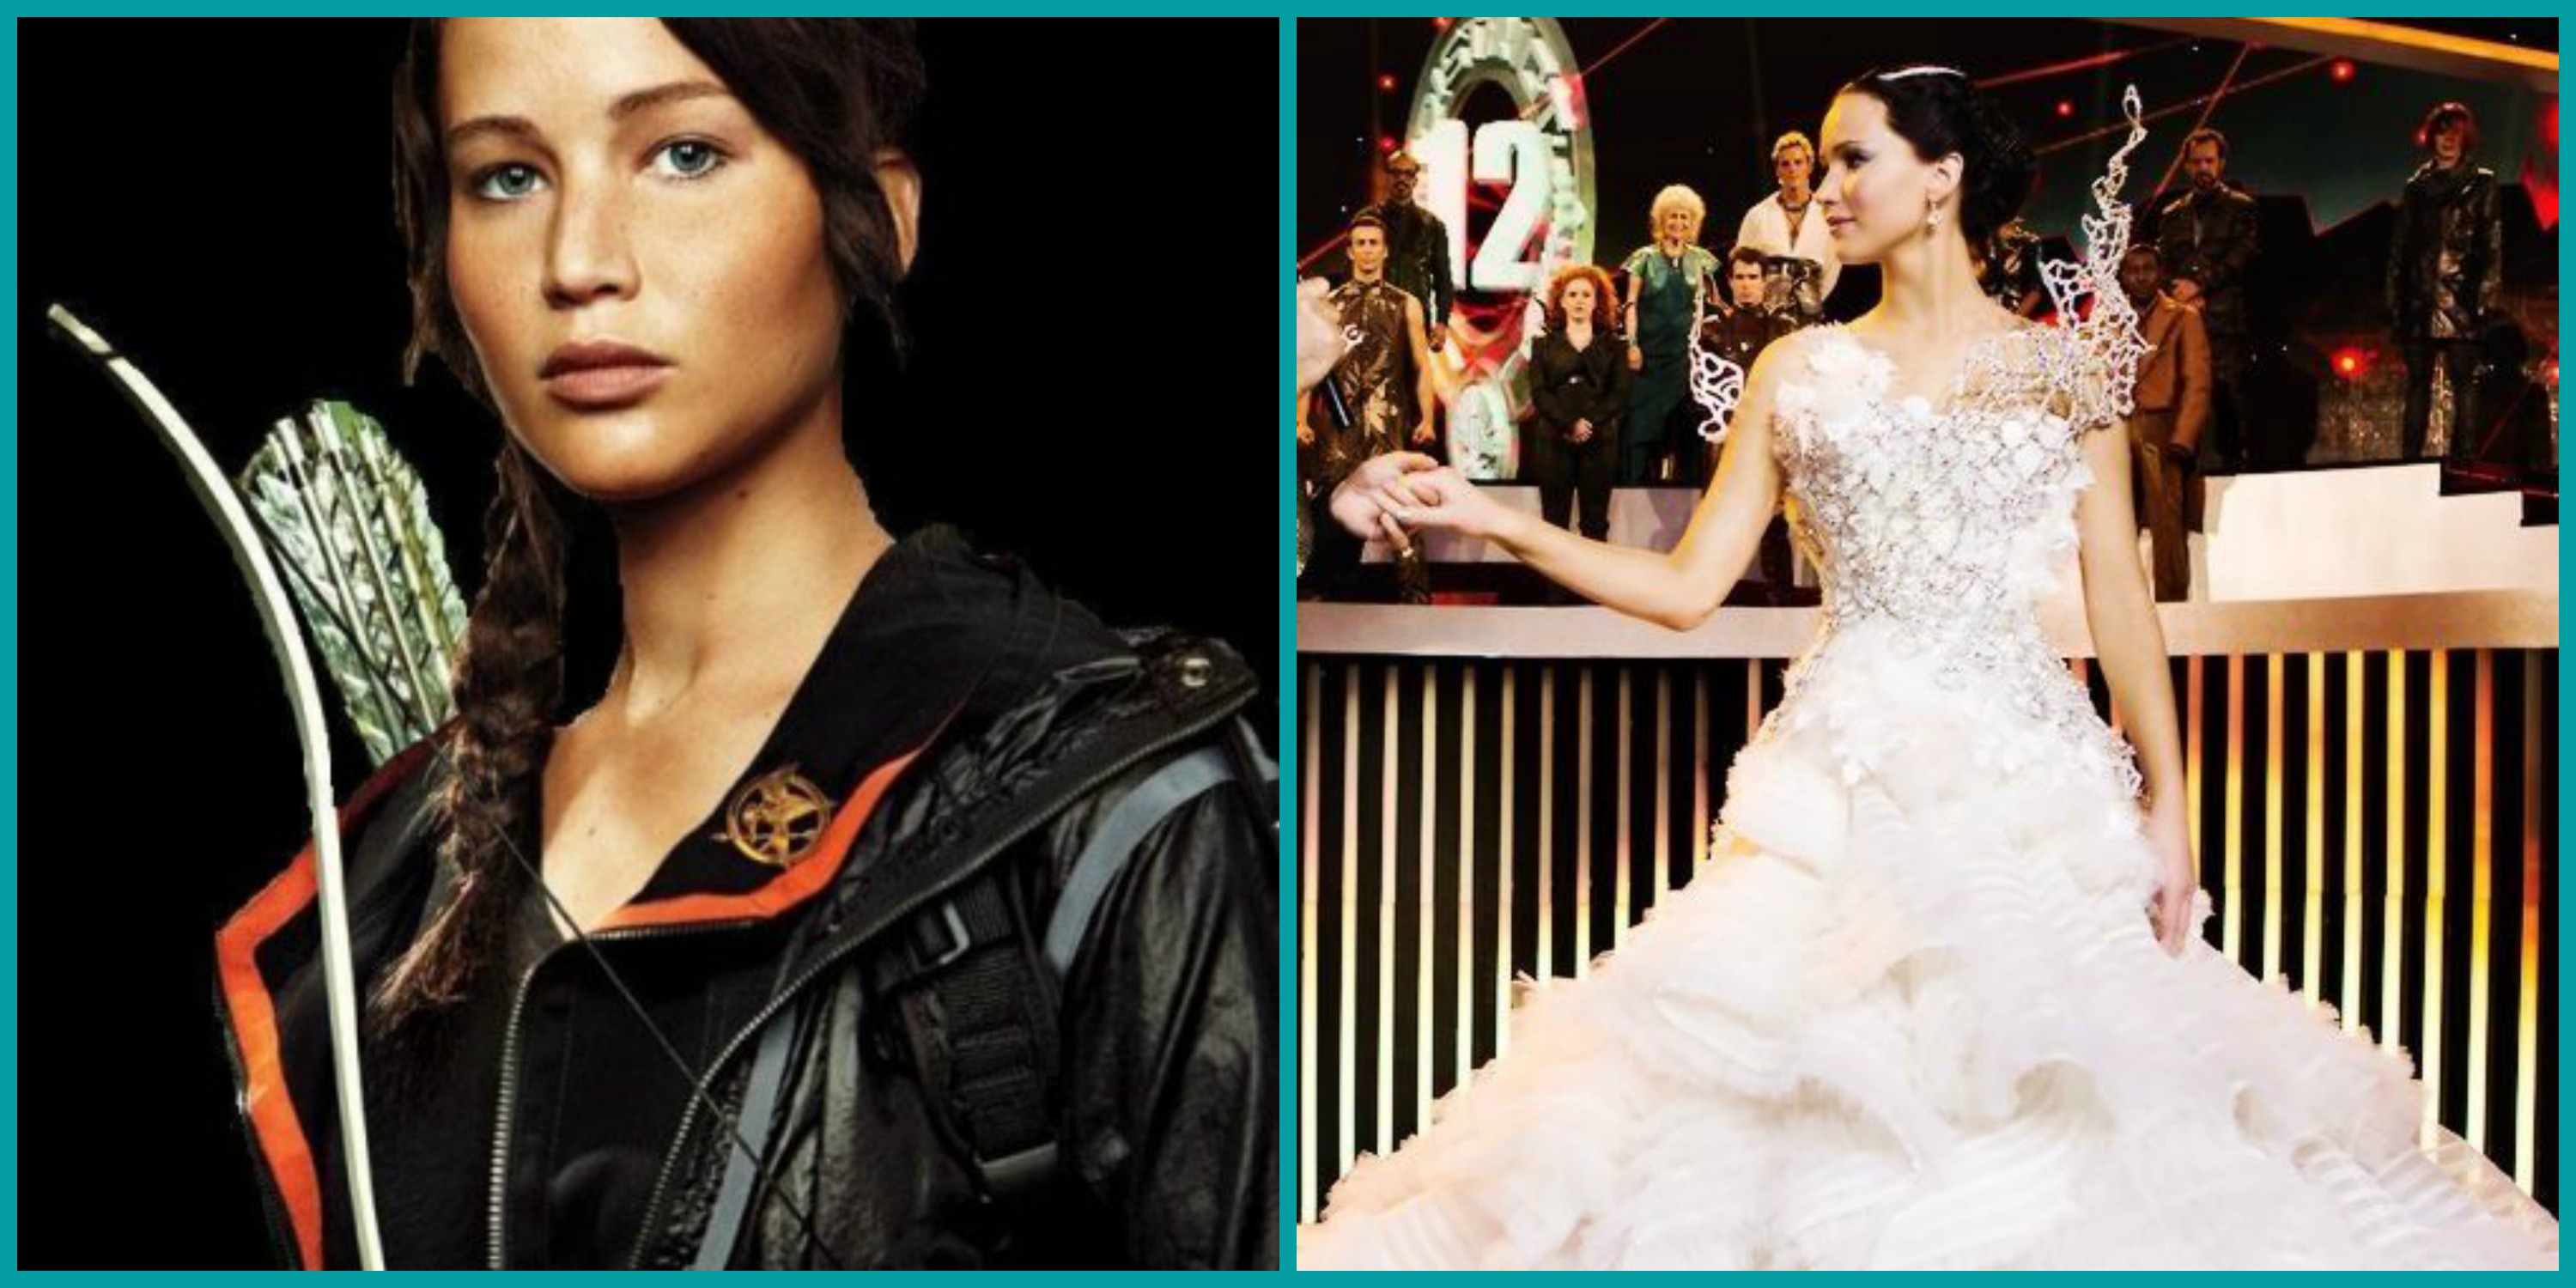 Katniss' fashion ranges from functional outfits to flattering gowns.